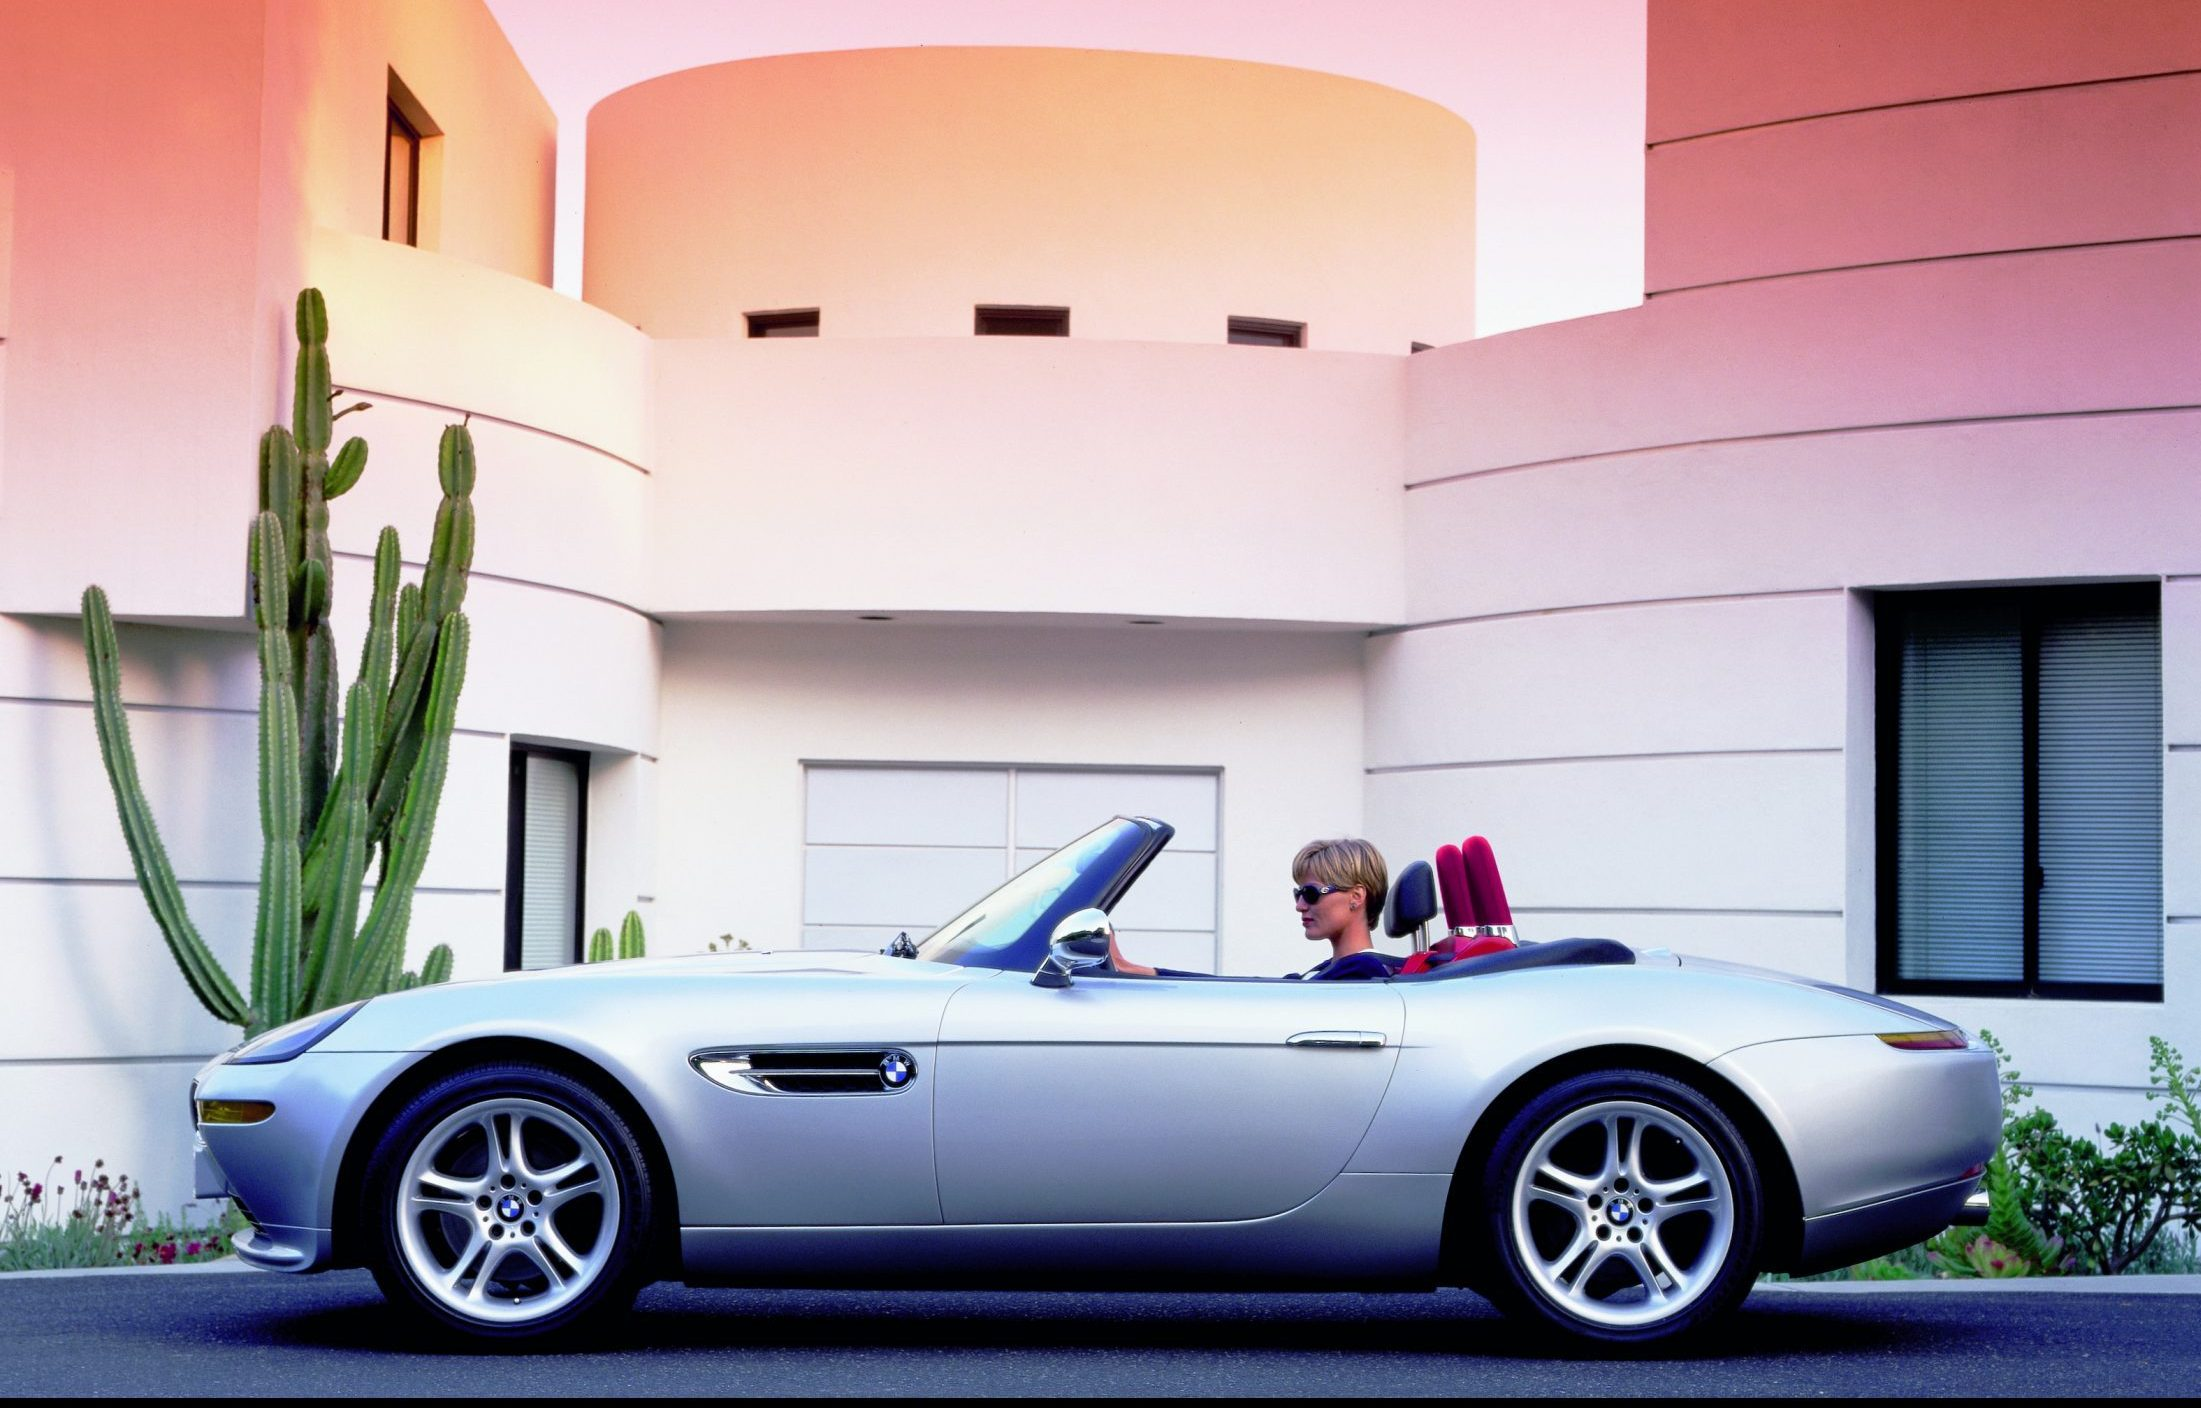 Remembering BMW's Z8, the rare retro roadster